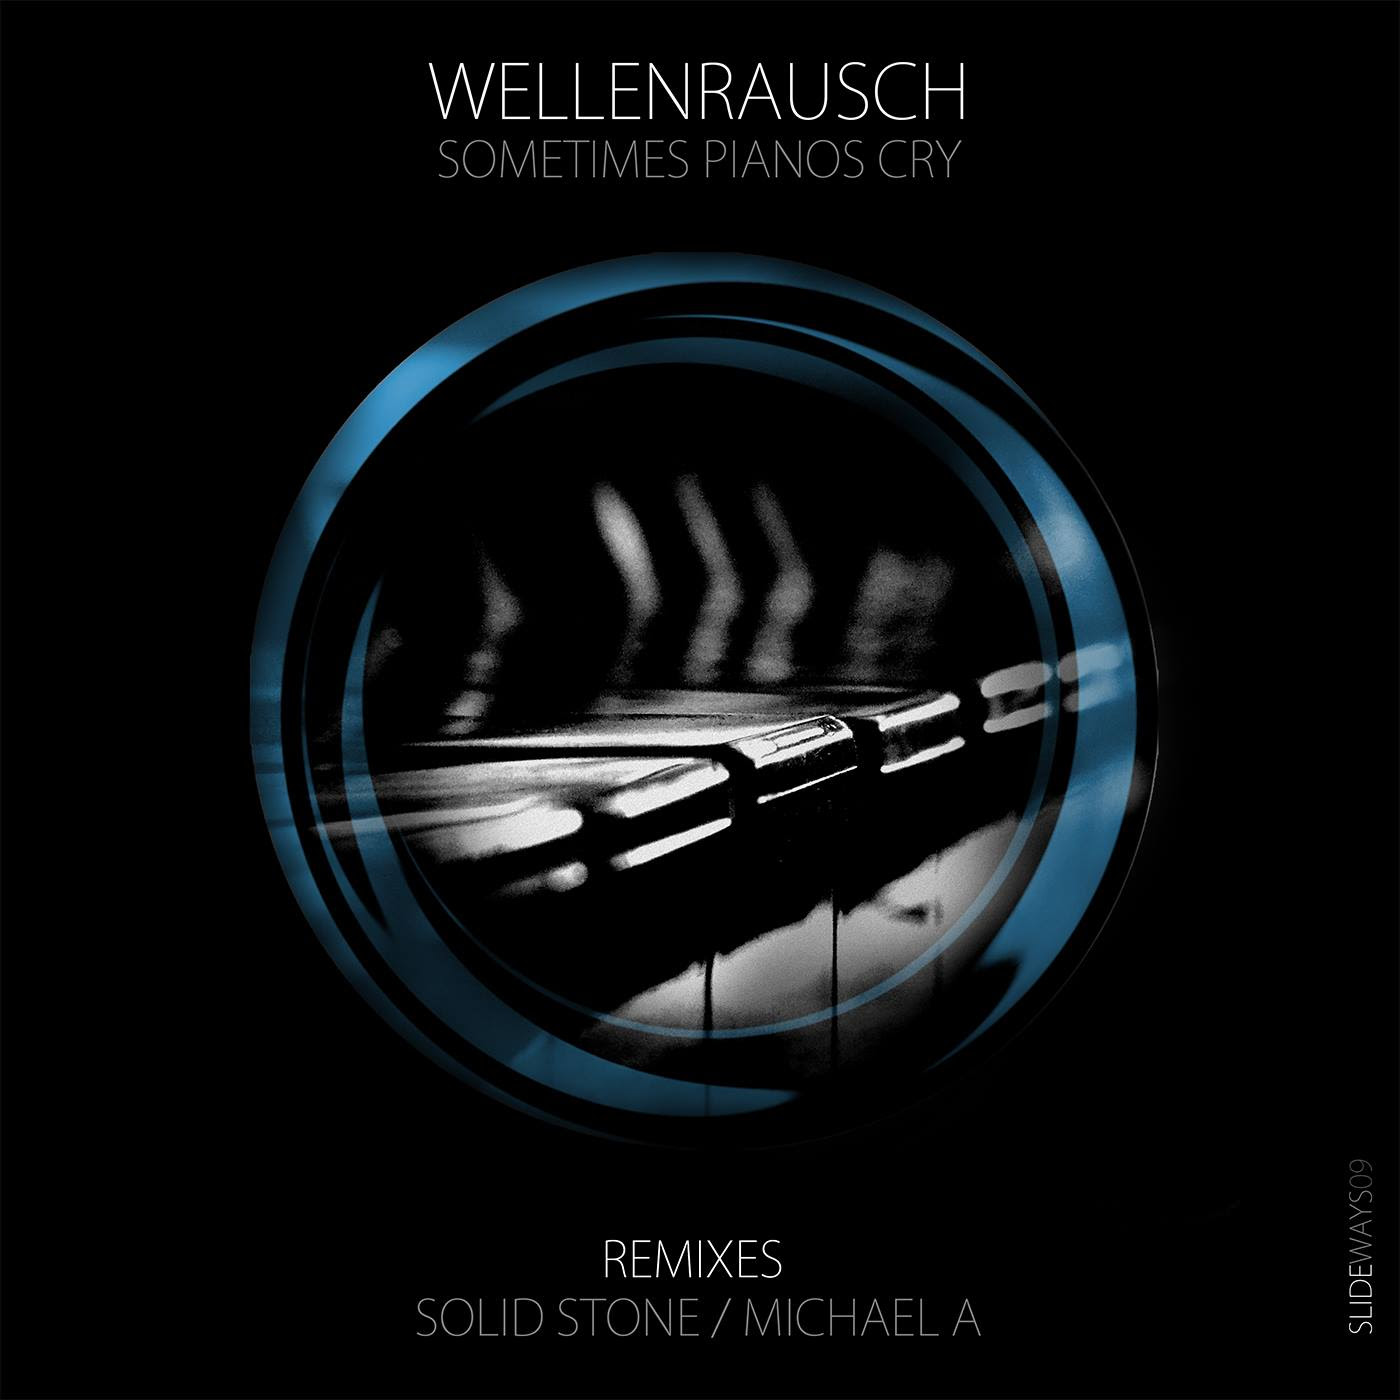 Wellenrausch - Sometimes Pianos Cry